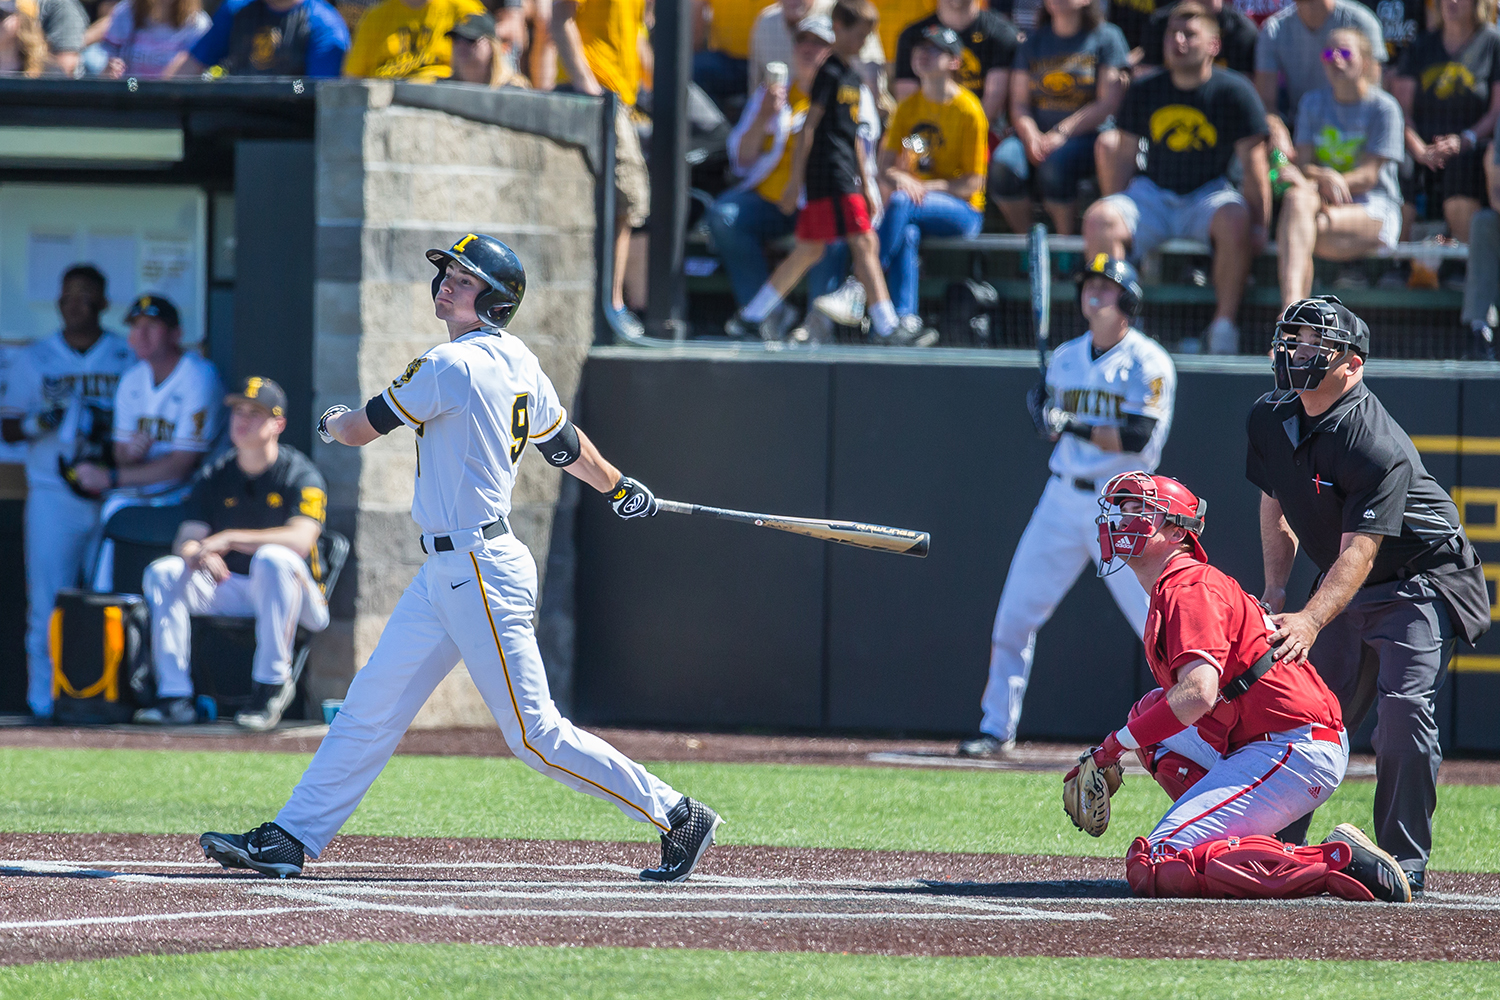 Iowa outfielder Ben Norman watches the ball after making contact during a baseball game between Iowa and Nebraska at Duane Banks Field on Saturday, April 20, 2019. The Hawkeyes defeated the Cornhuskers, 17-9.